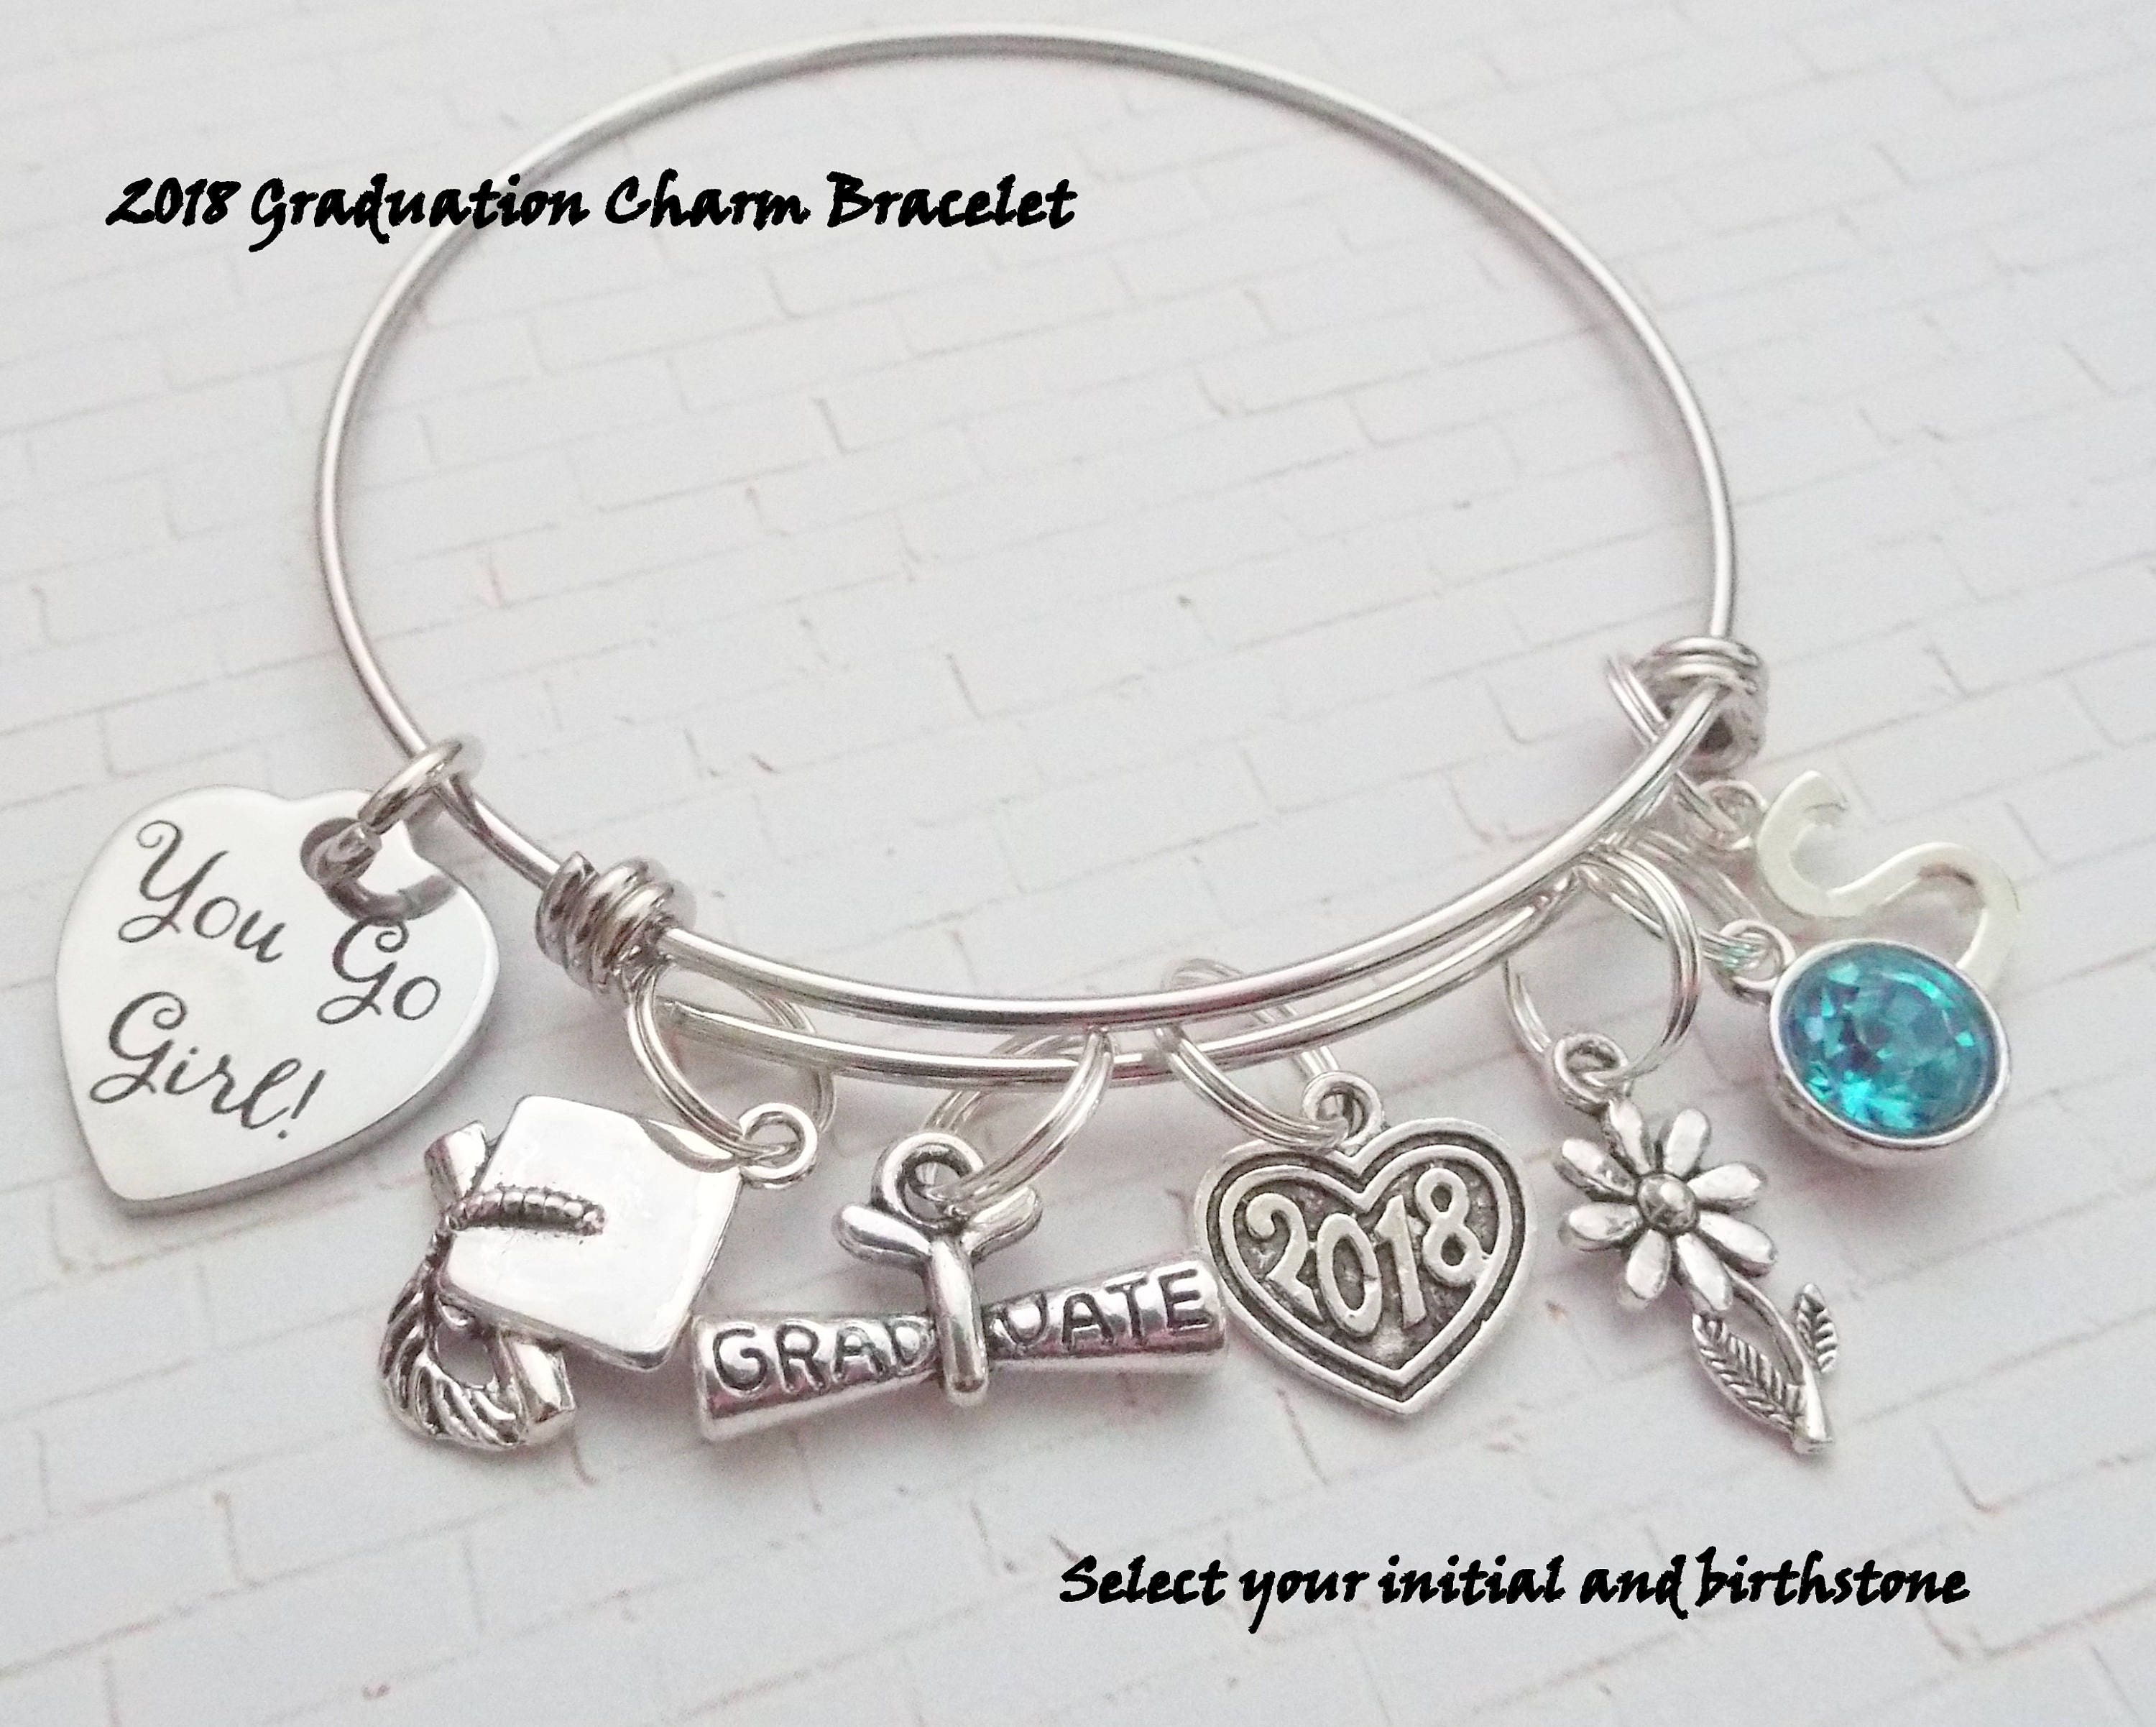 with lola have trust a jewelryd ro cap graduation charm product bracelet phd me i